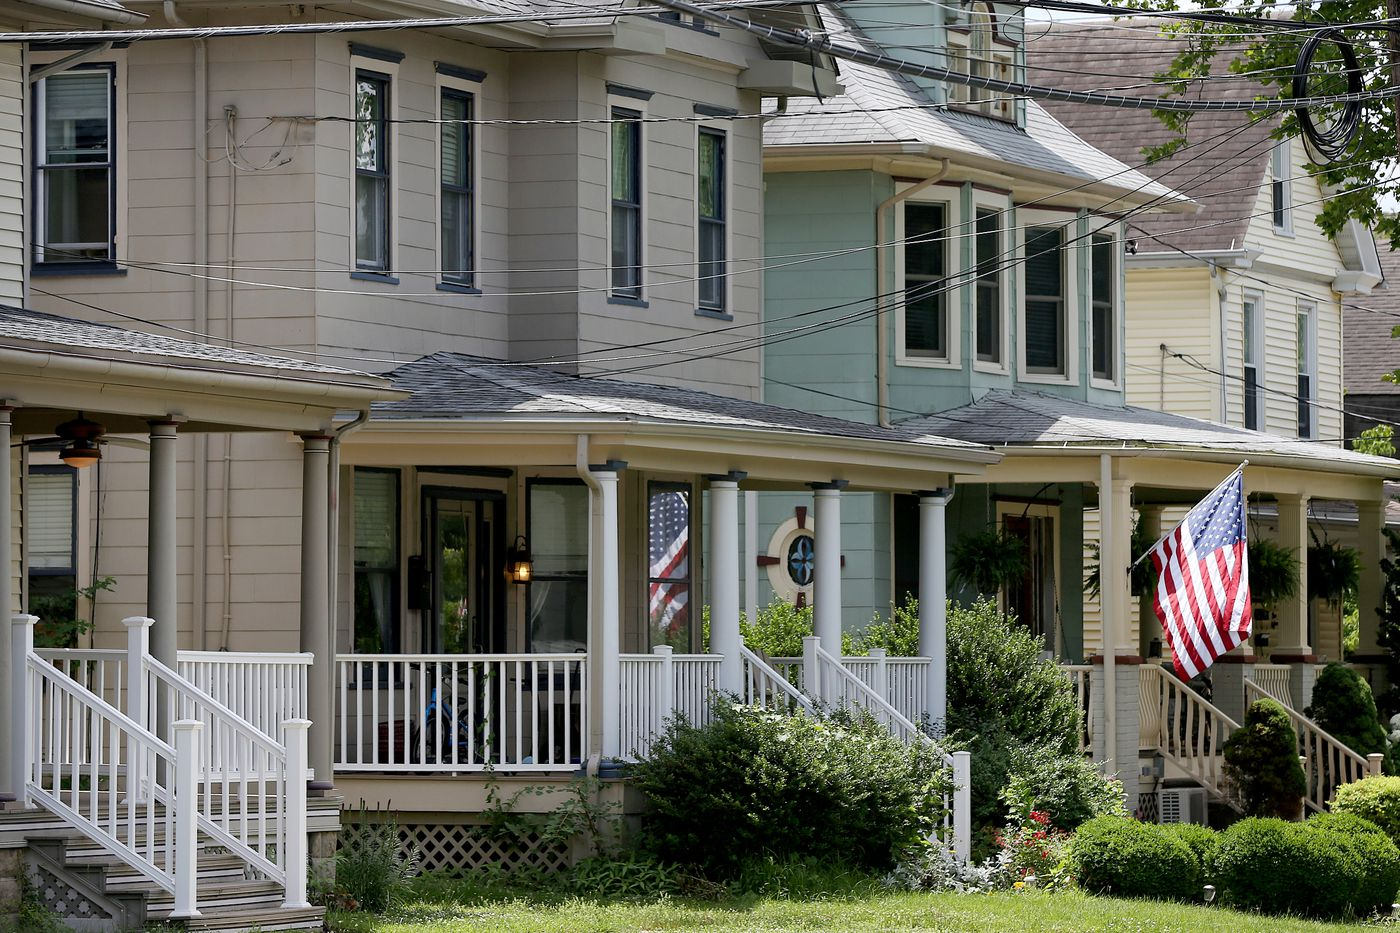 Collingswood begins shutting down Airbnbs, as cities and